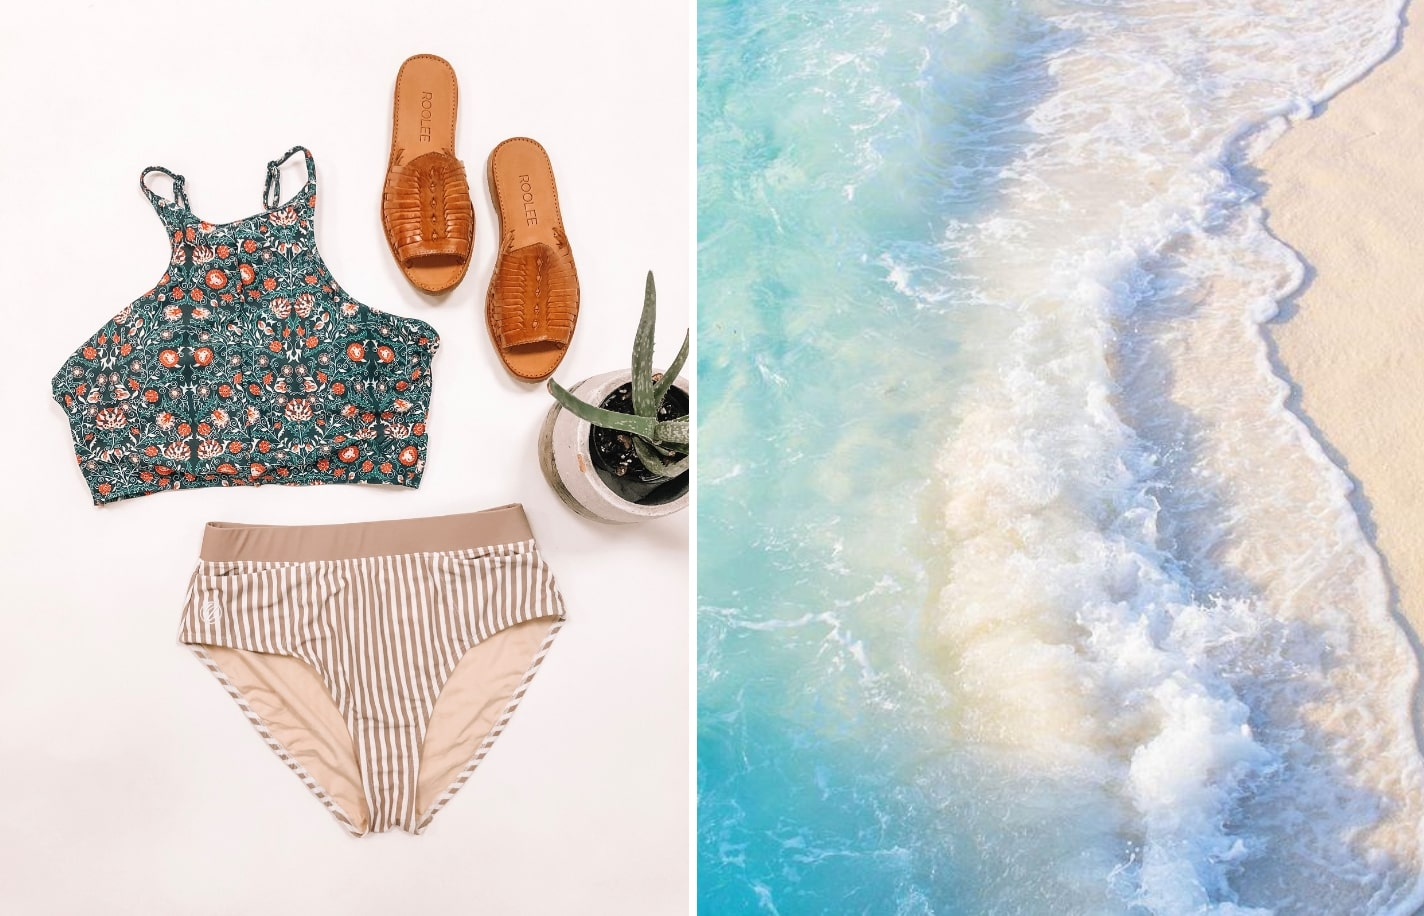 The Best Swimsuit For Laying On The Beach